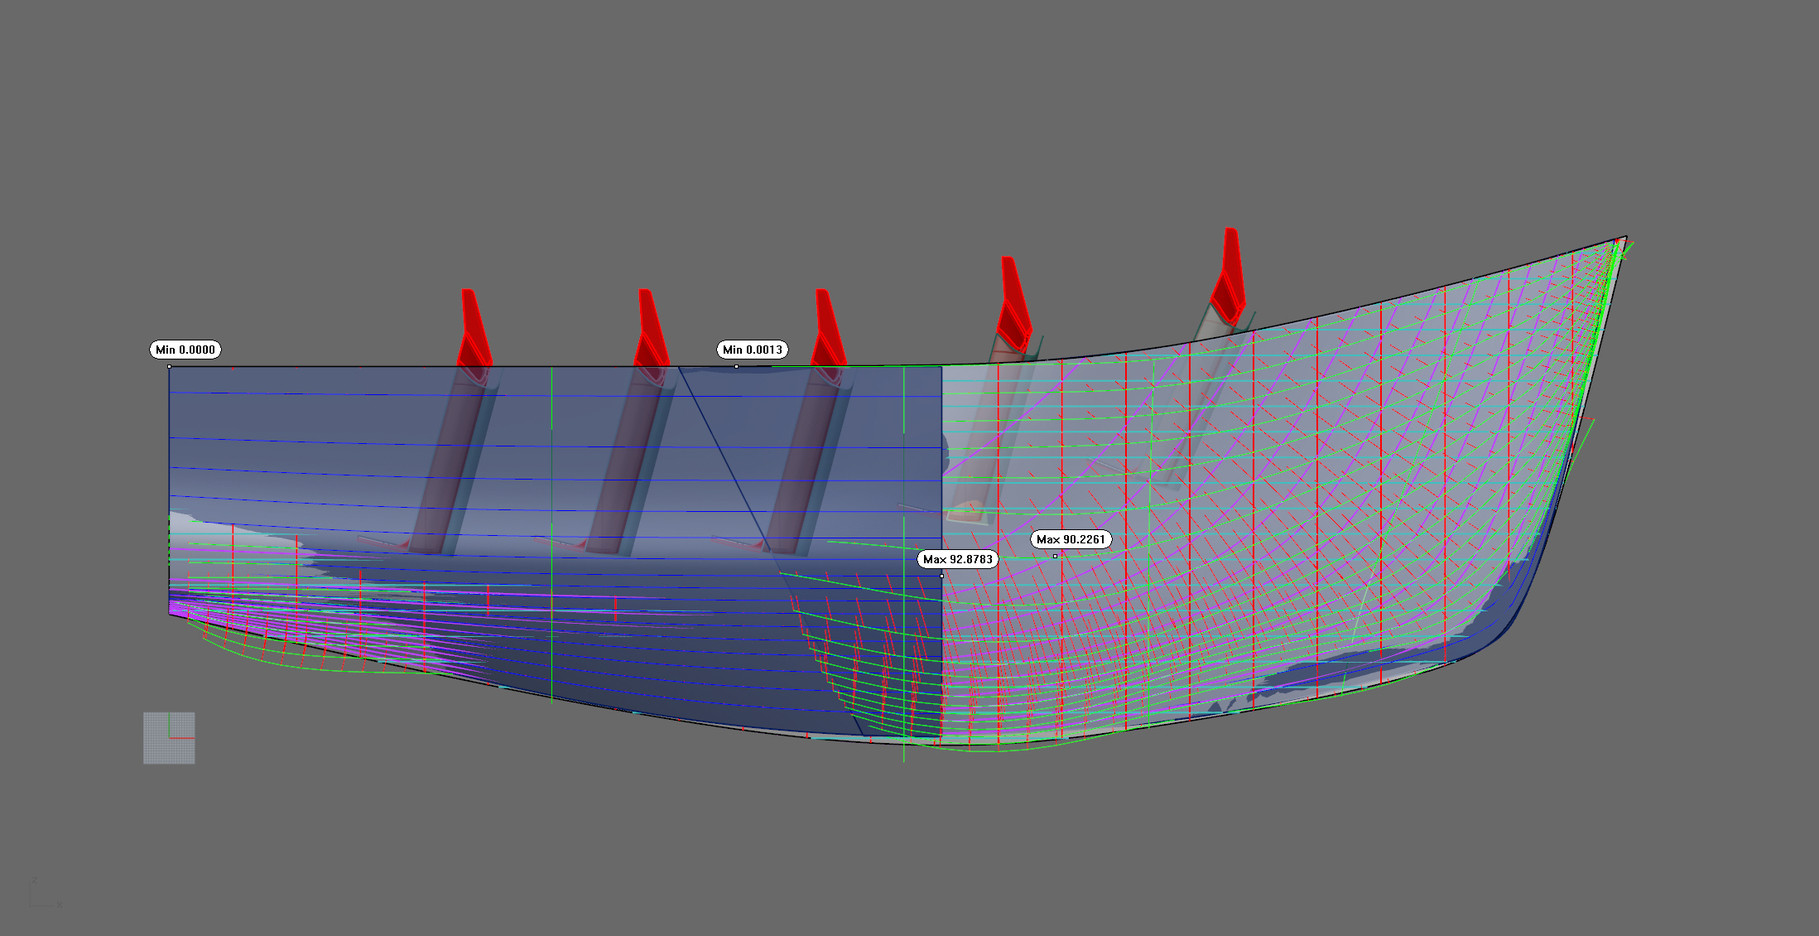 Deviation measurement of pattern to new hull